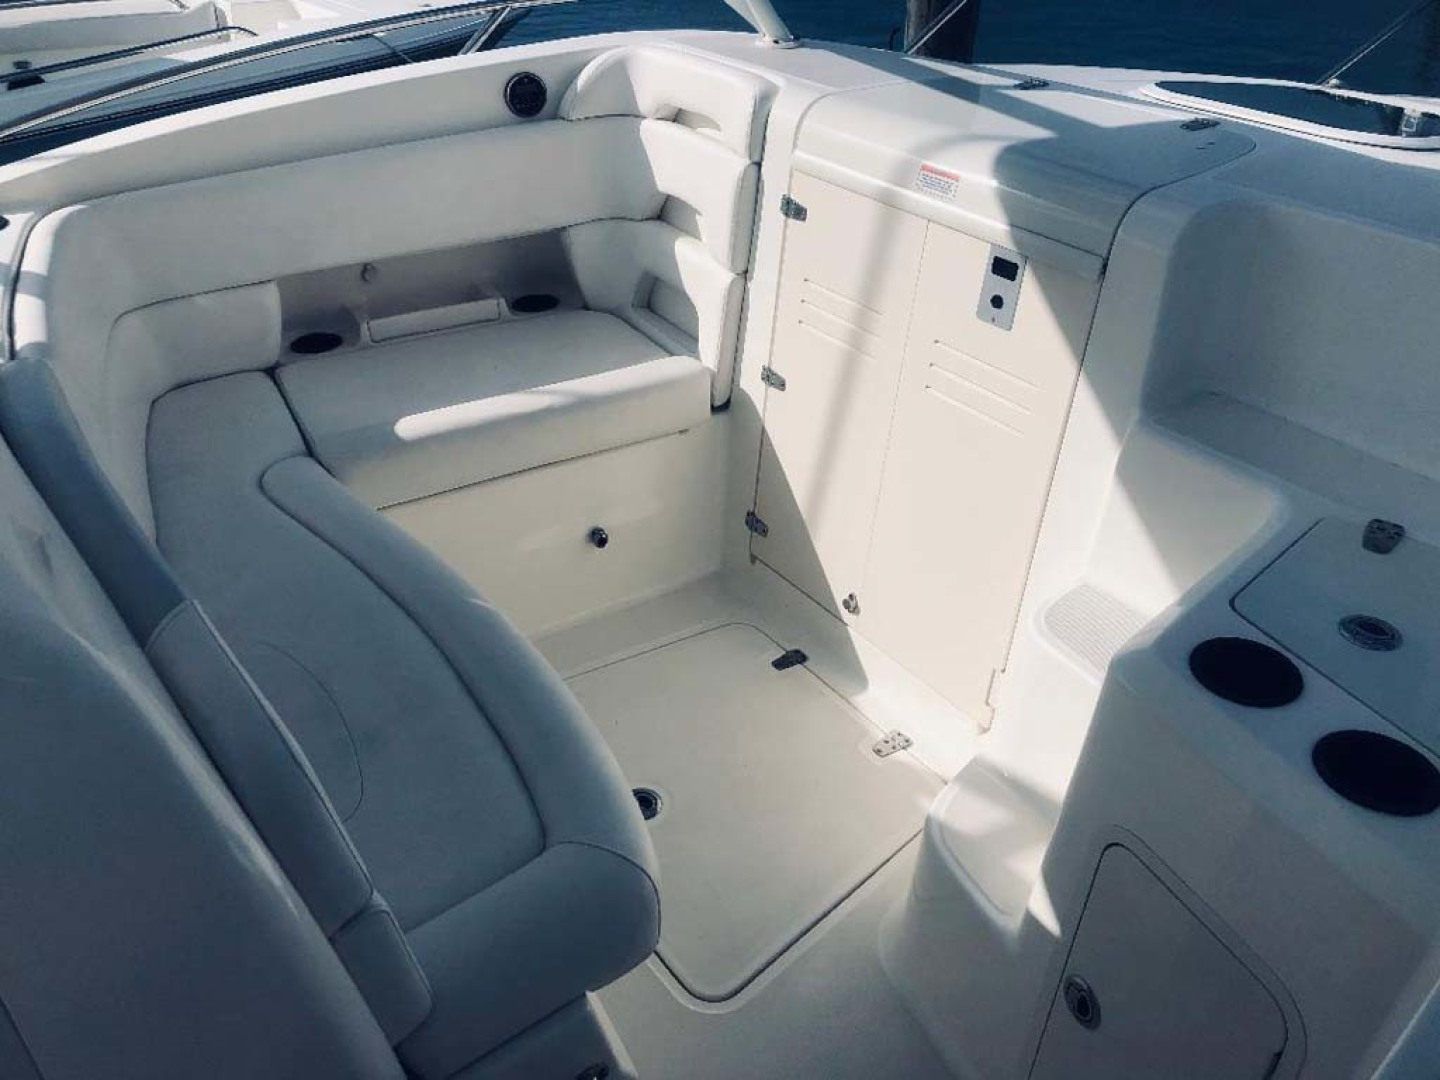 Boston Whaler-320 Outrage 2011 -Cape May-New Jersey-United States-Forward Seating, Cuddy Entry-1237205 | Thumbnail